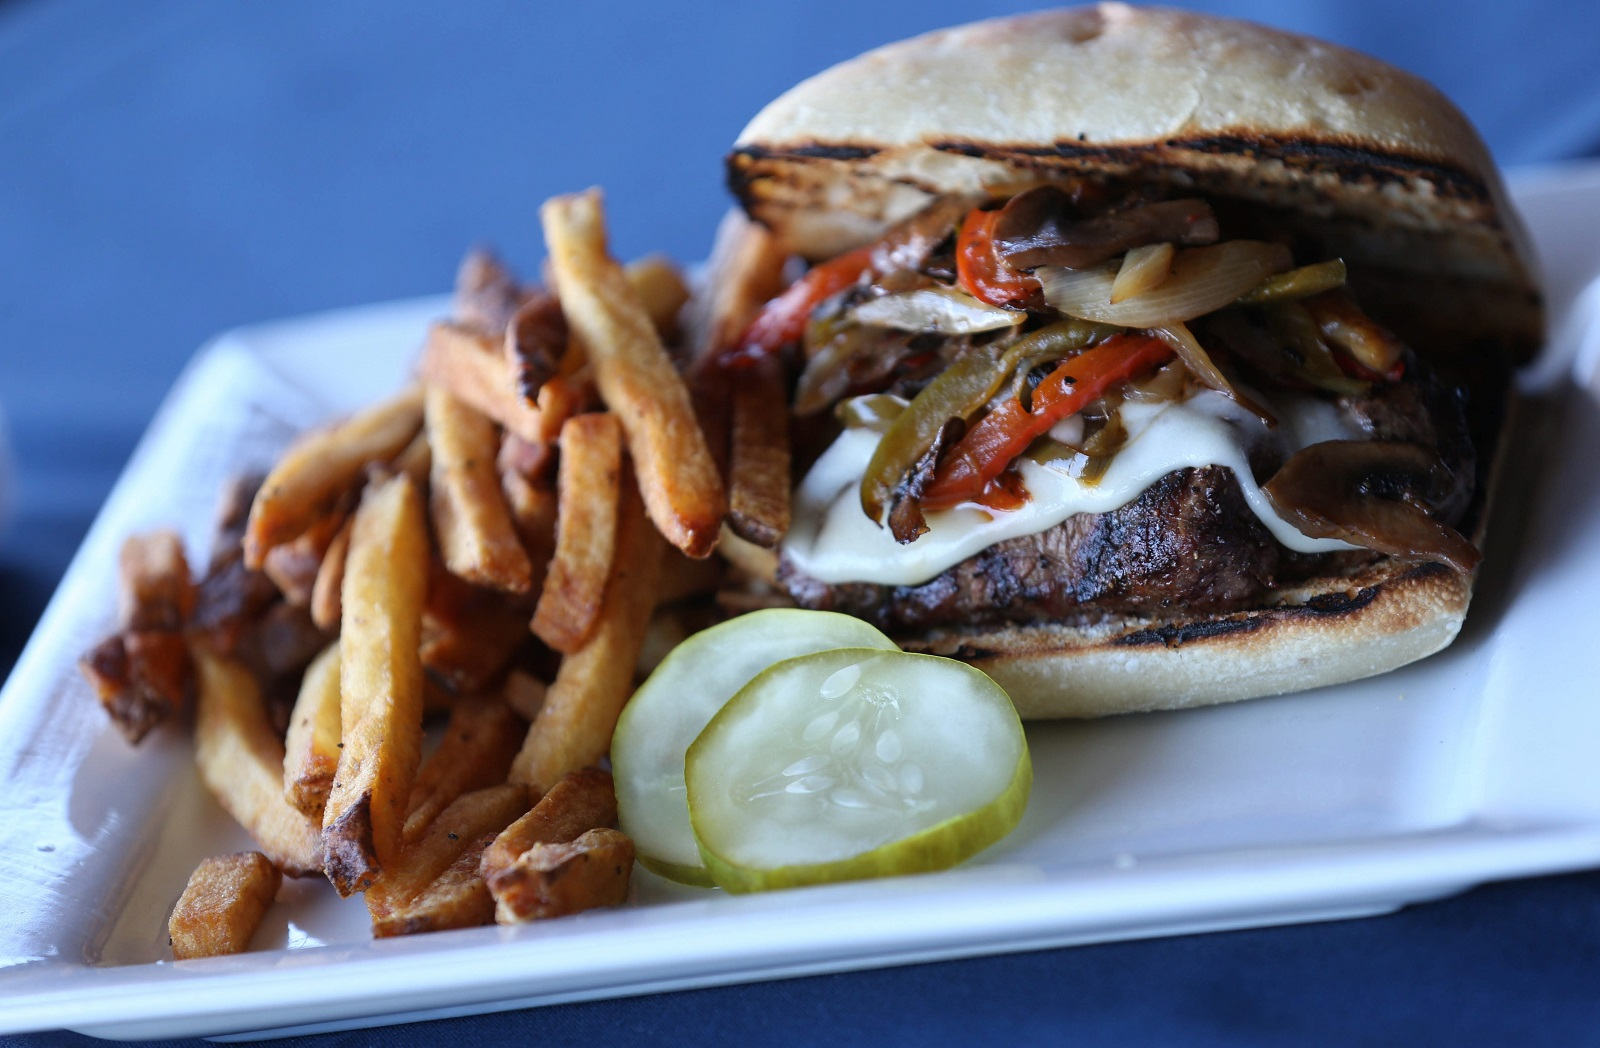 The Public House steak sandwich is made with Meyer filet mignon, mozzarella cheese, sautéed peppers, mushrooms and onions on a ciabatta roll. (Sharon Cantillon/Buffalo News)